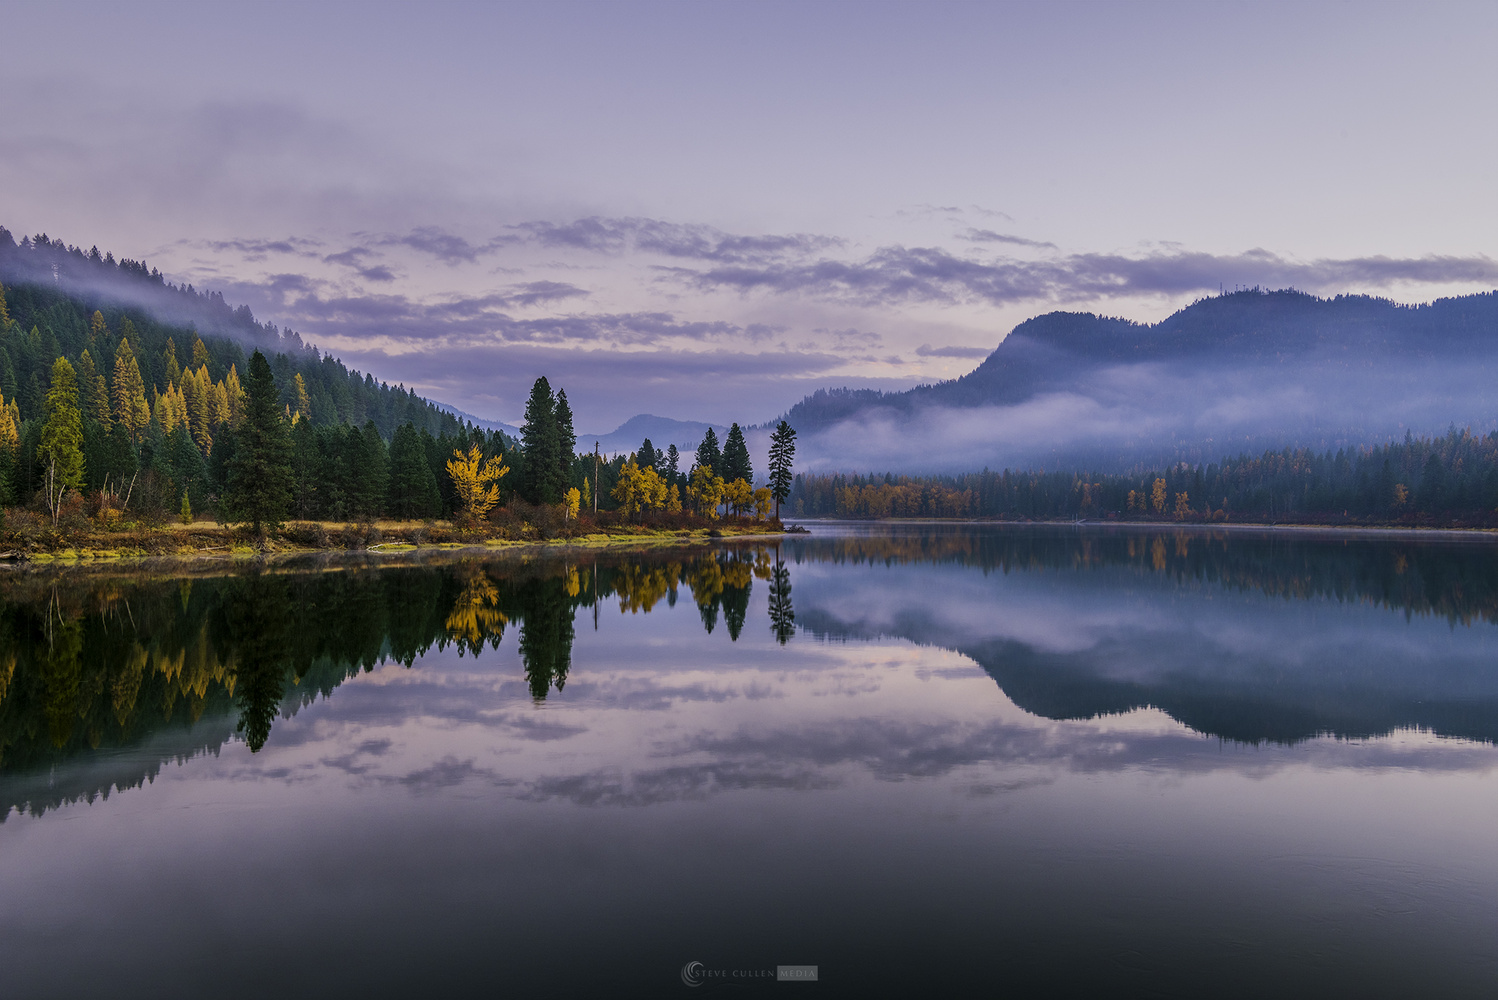 Tranquility by Steve Cullen